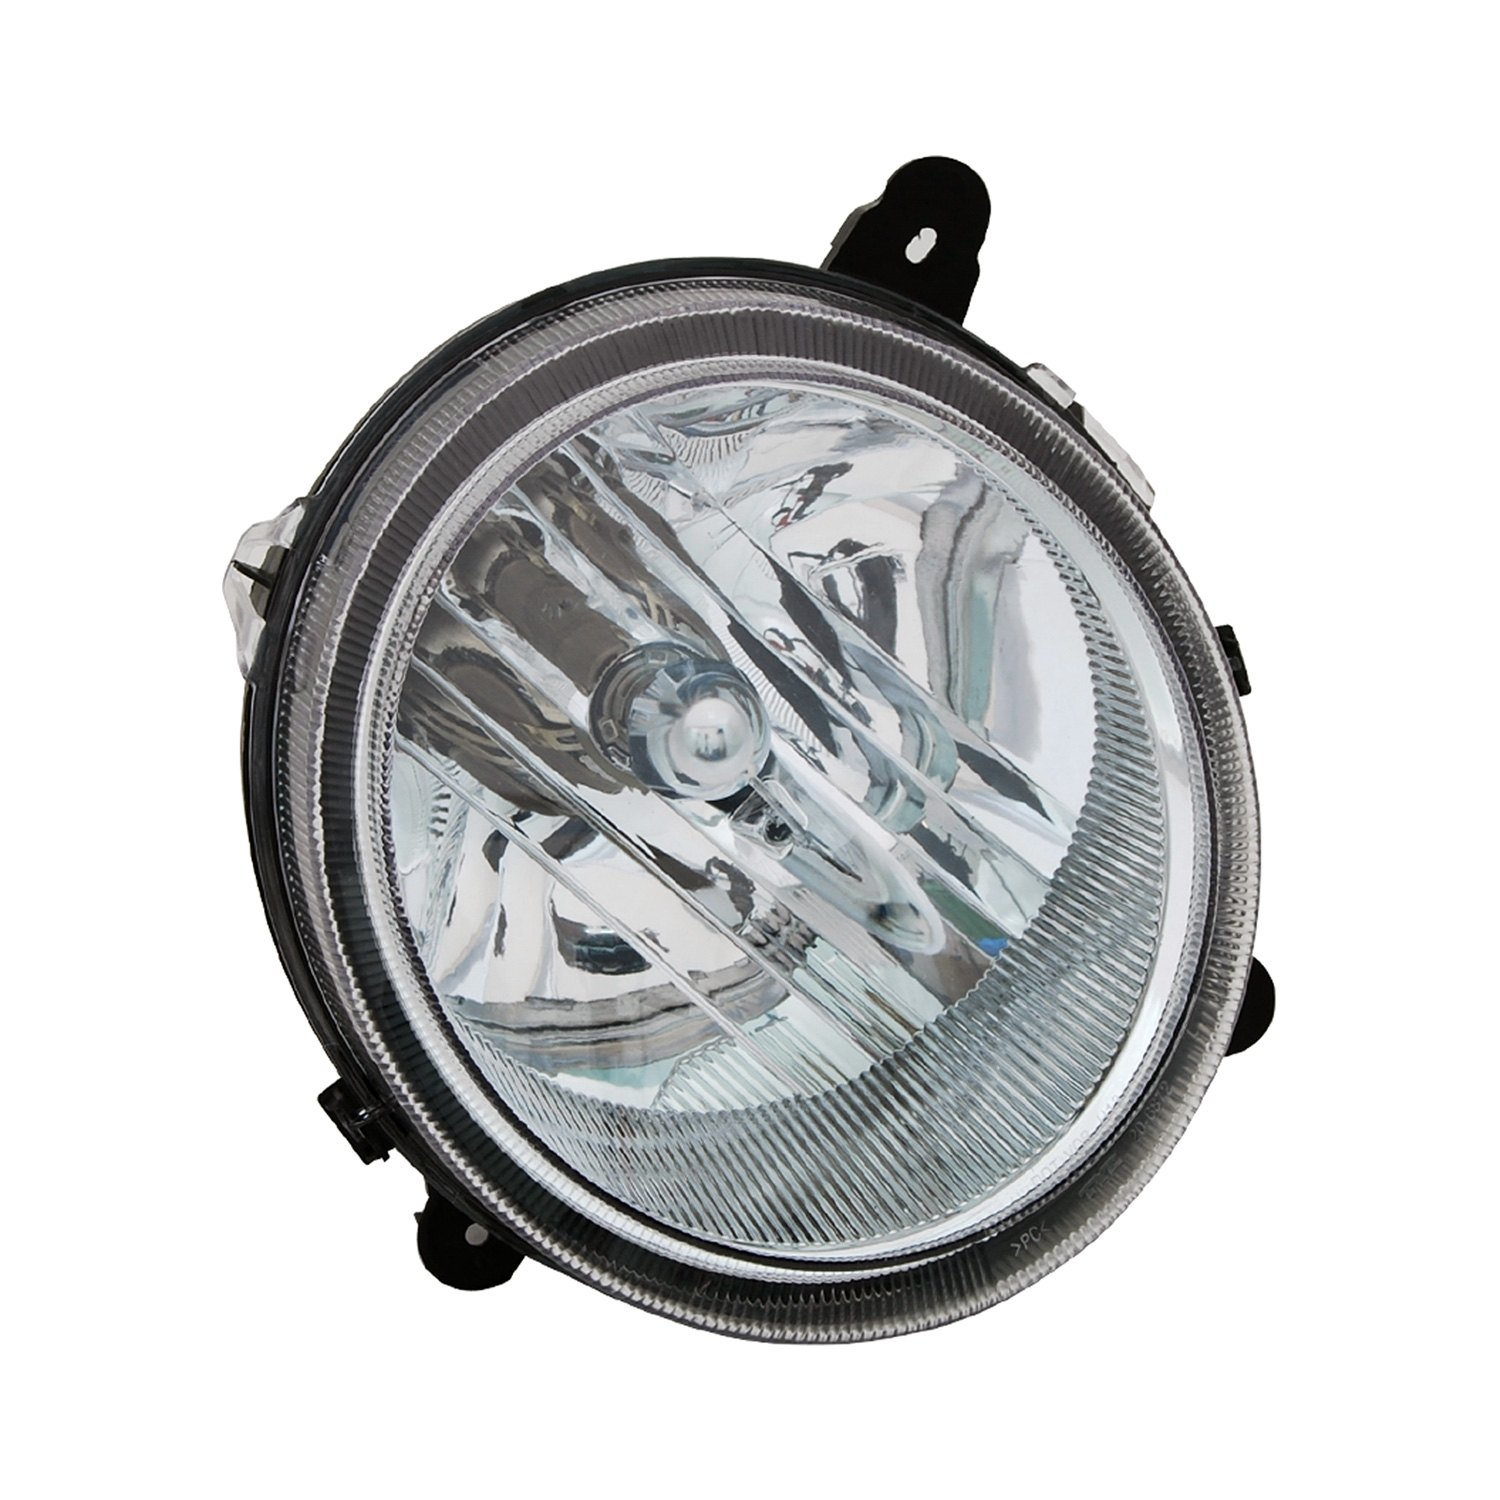 Car Headlights Replacement : Replace jeep patriot without auto leveling headlights